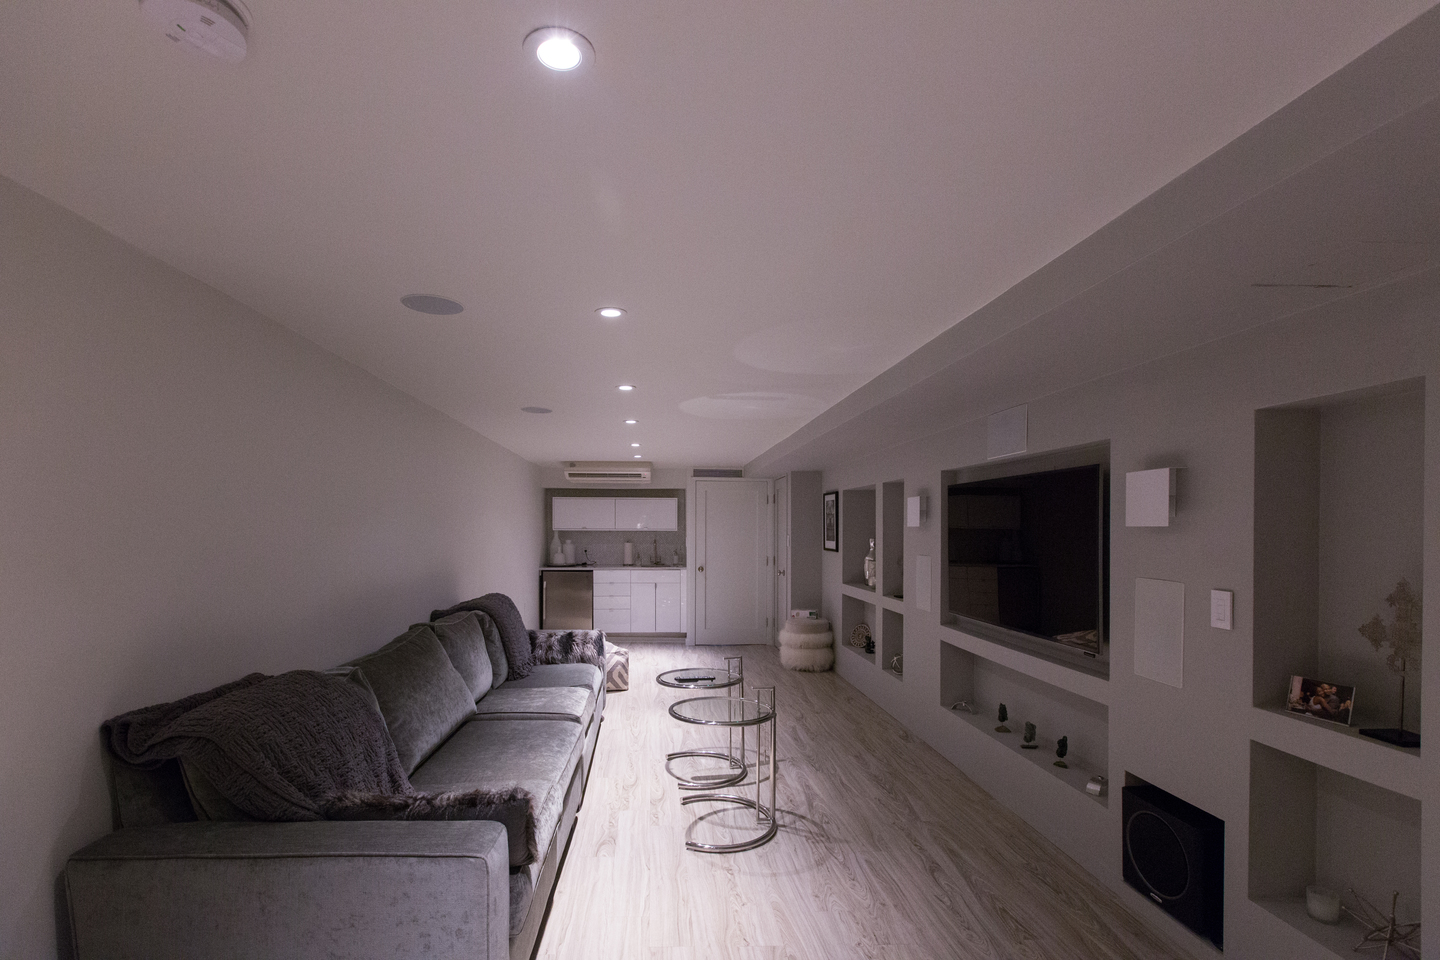 cables run within the house included two 50 feet 4K HDMI cables, fiber optic cables and speaker cables